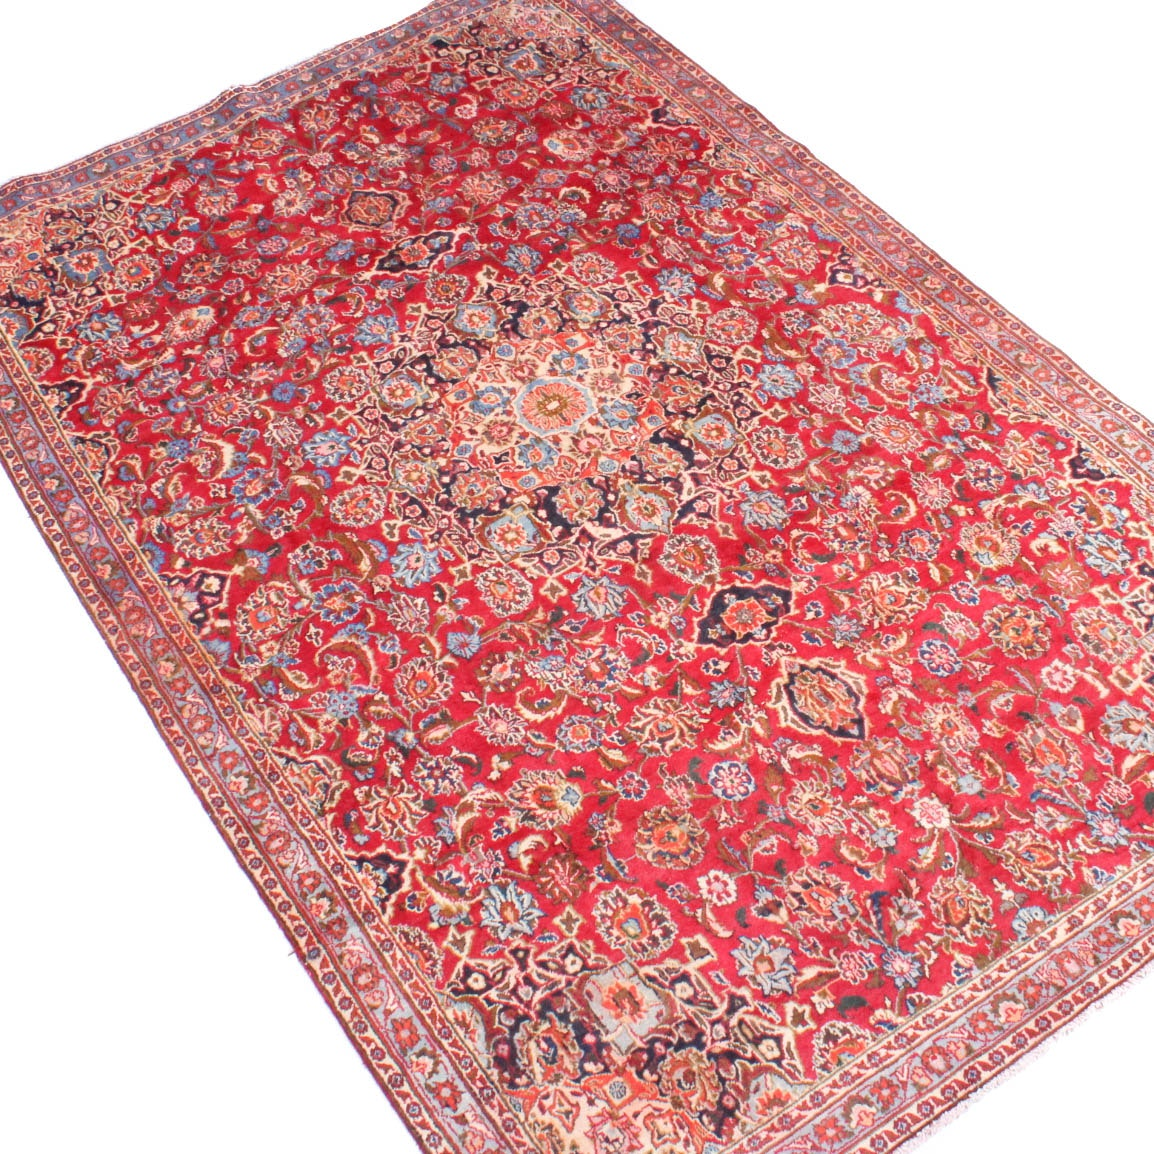 Semi-Antique Hand Knotted Persian Mashad Area Rug